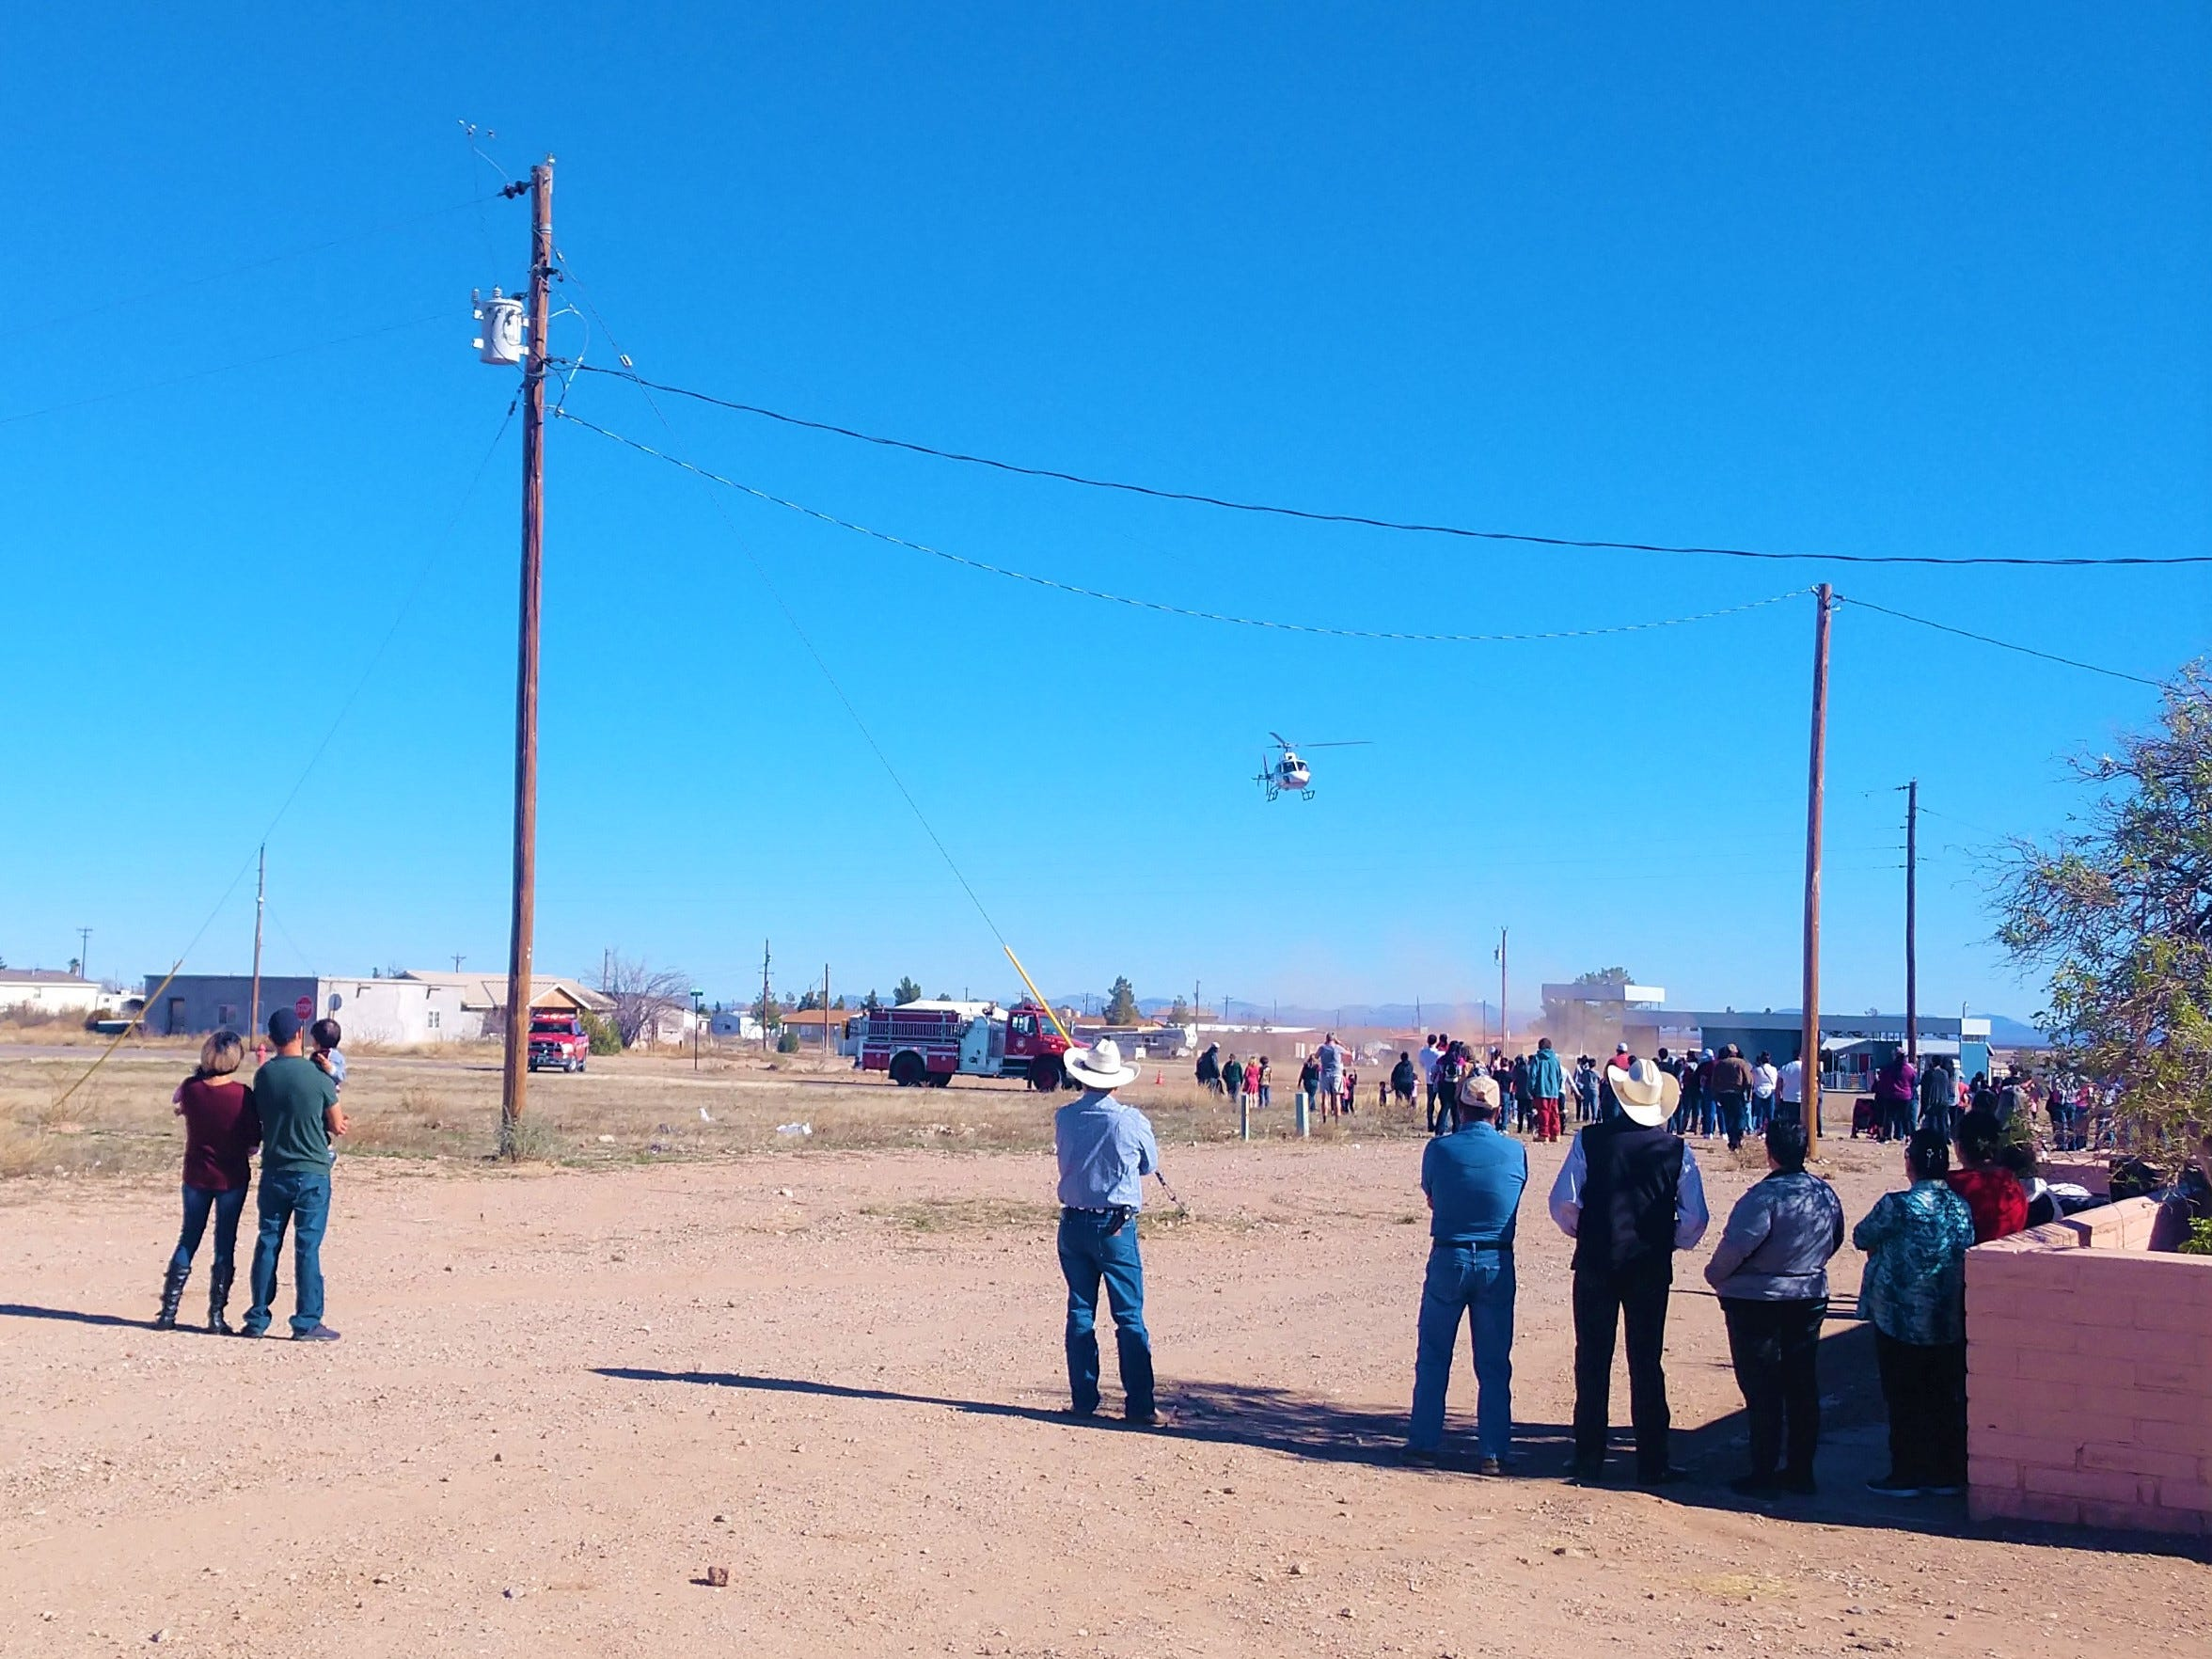 Families from the Village of Columbus gather to see Santa Claus arrive by helicopter.